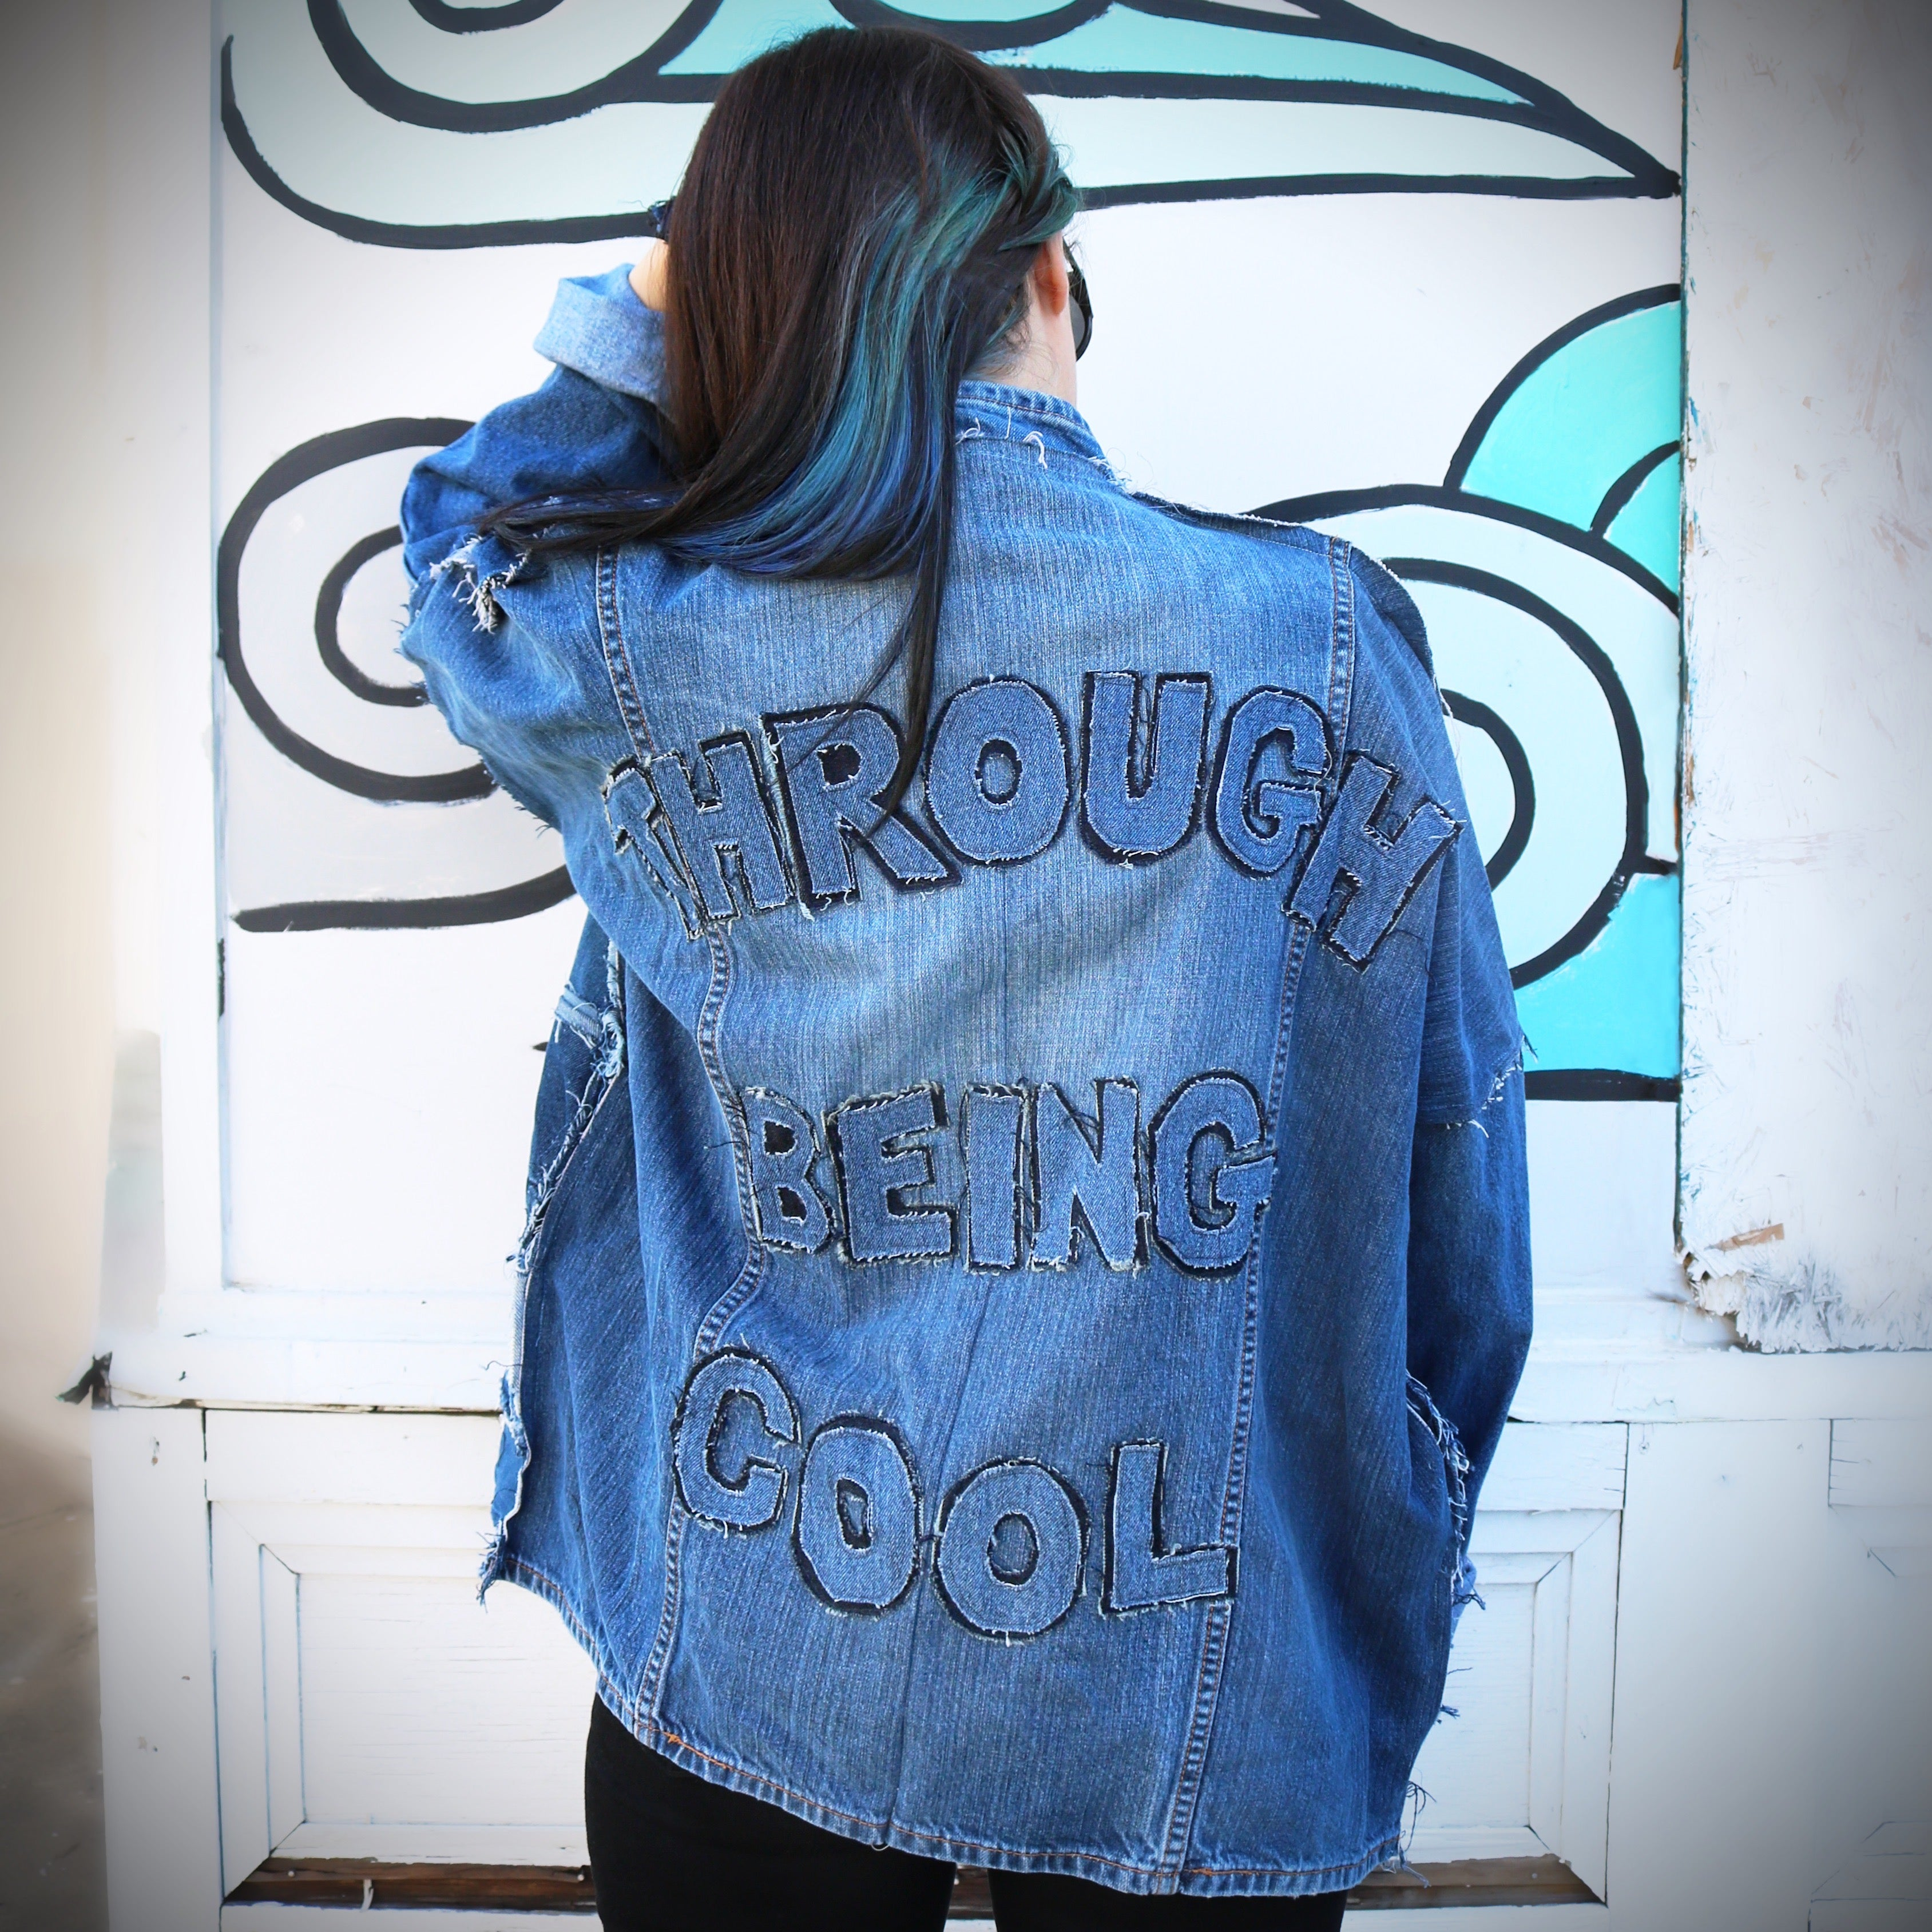 #REMIXbyStevieLeigh through being cool upcycled denim jacket